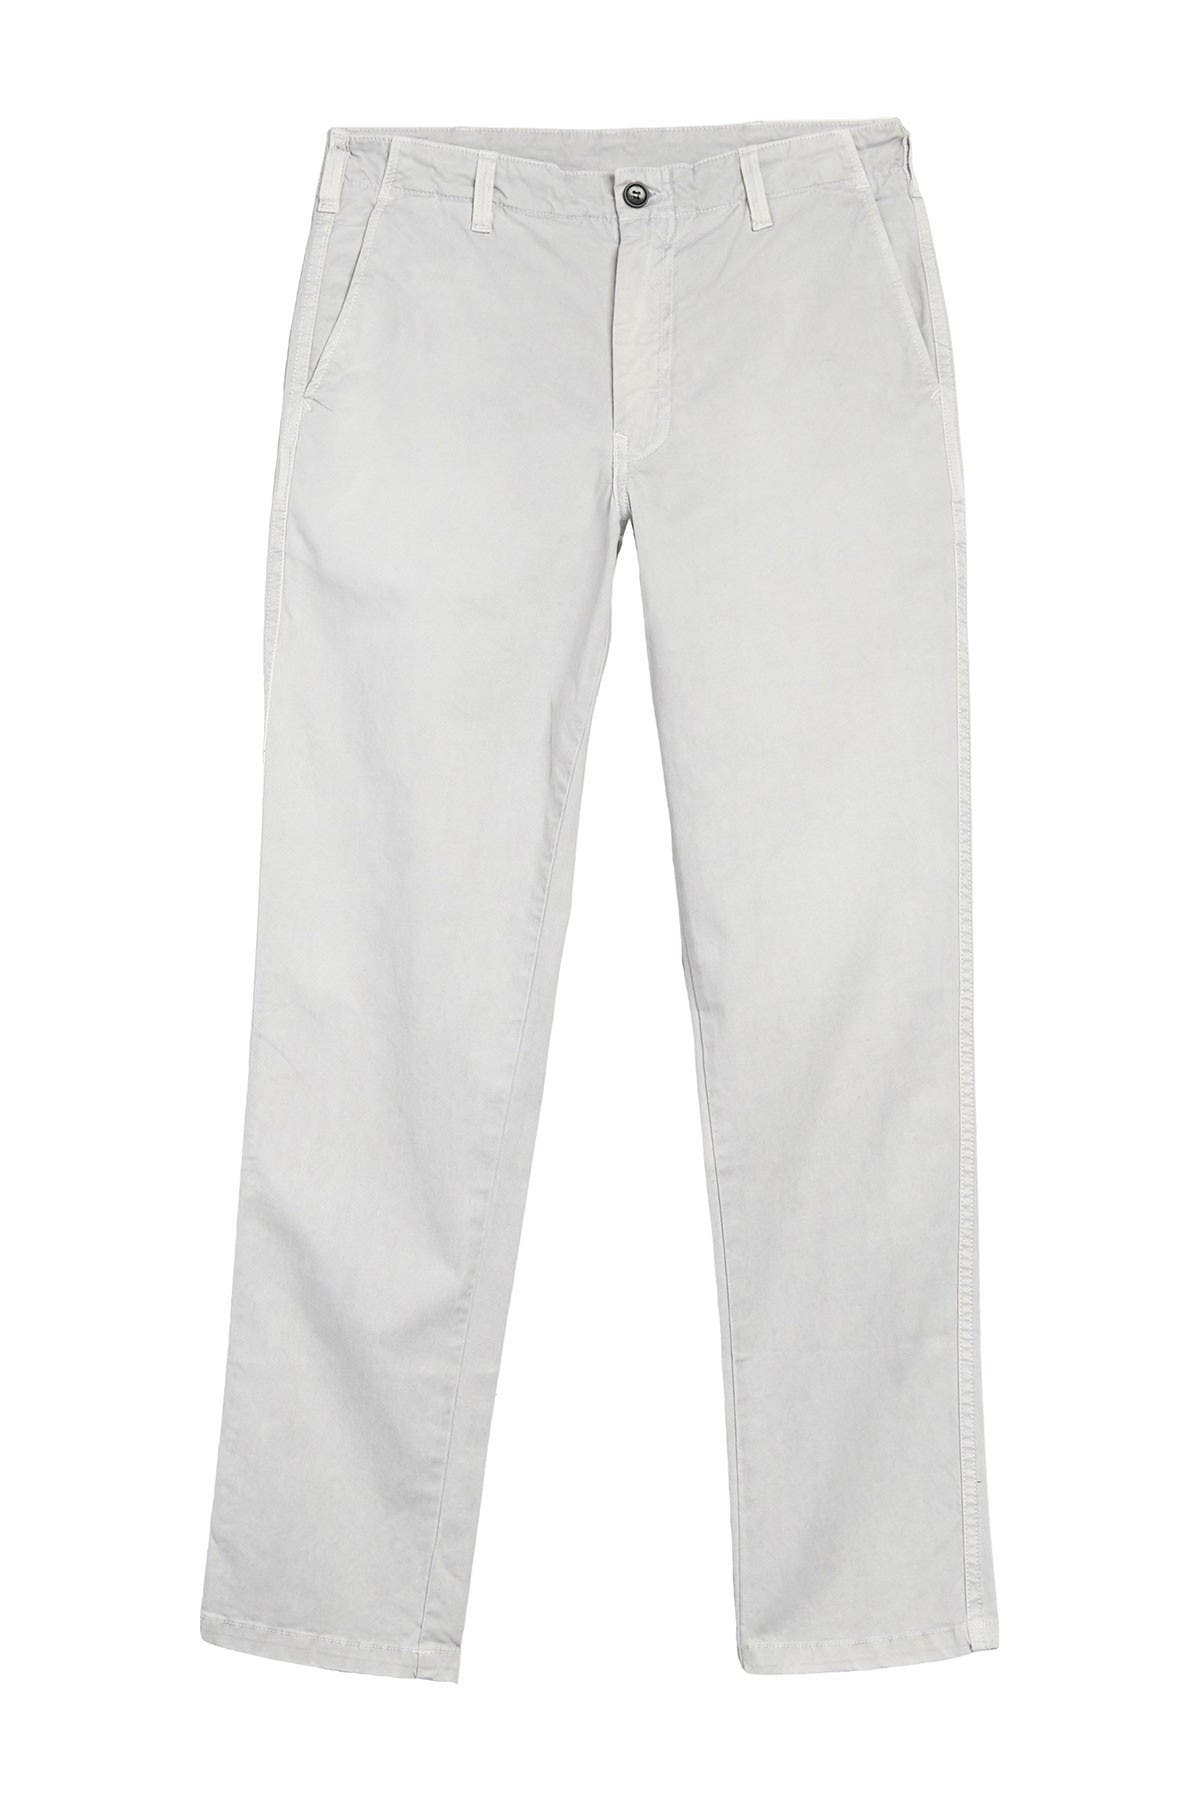 Image of BALDWIN Modern Slim Trousers